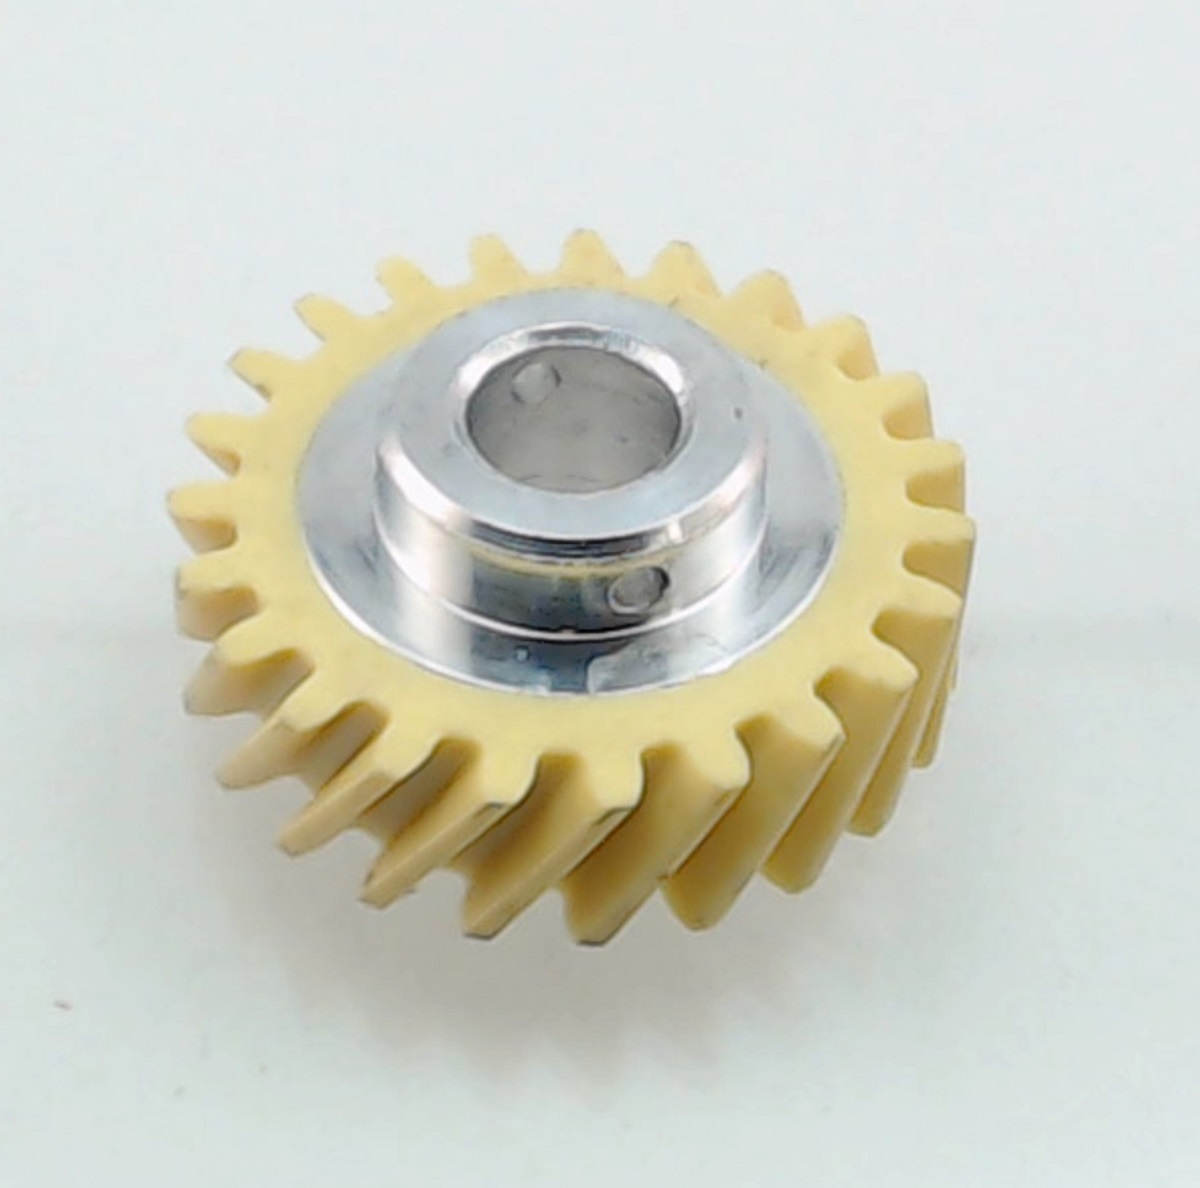 W10112253 Kitchenaid Stand Mixer Fiber Worm Gear